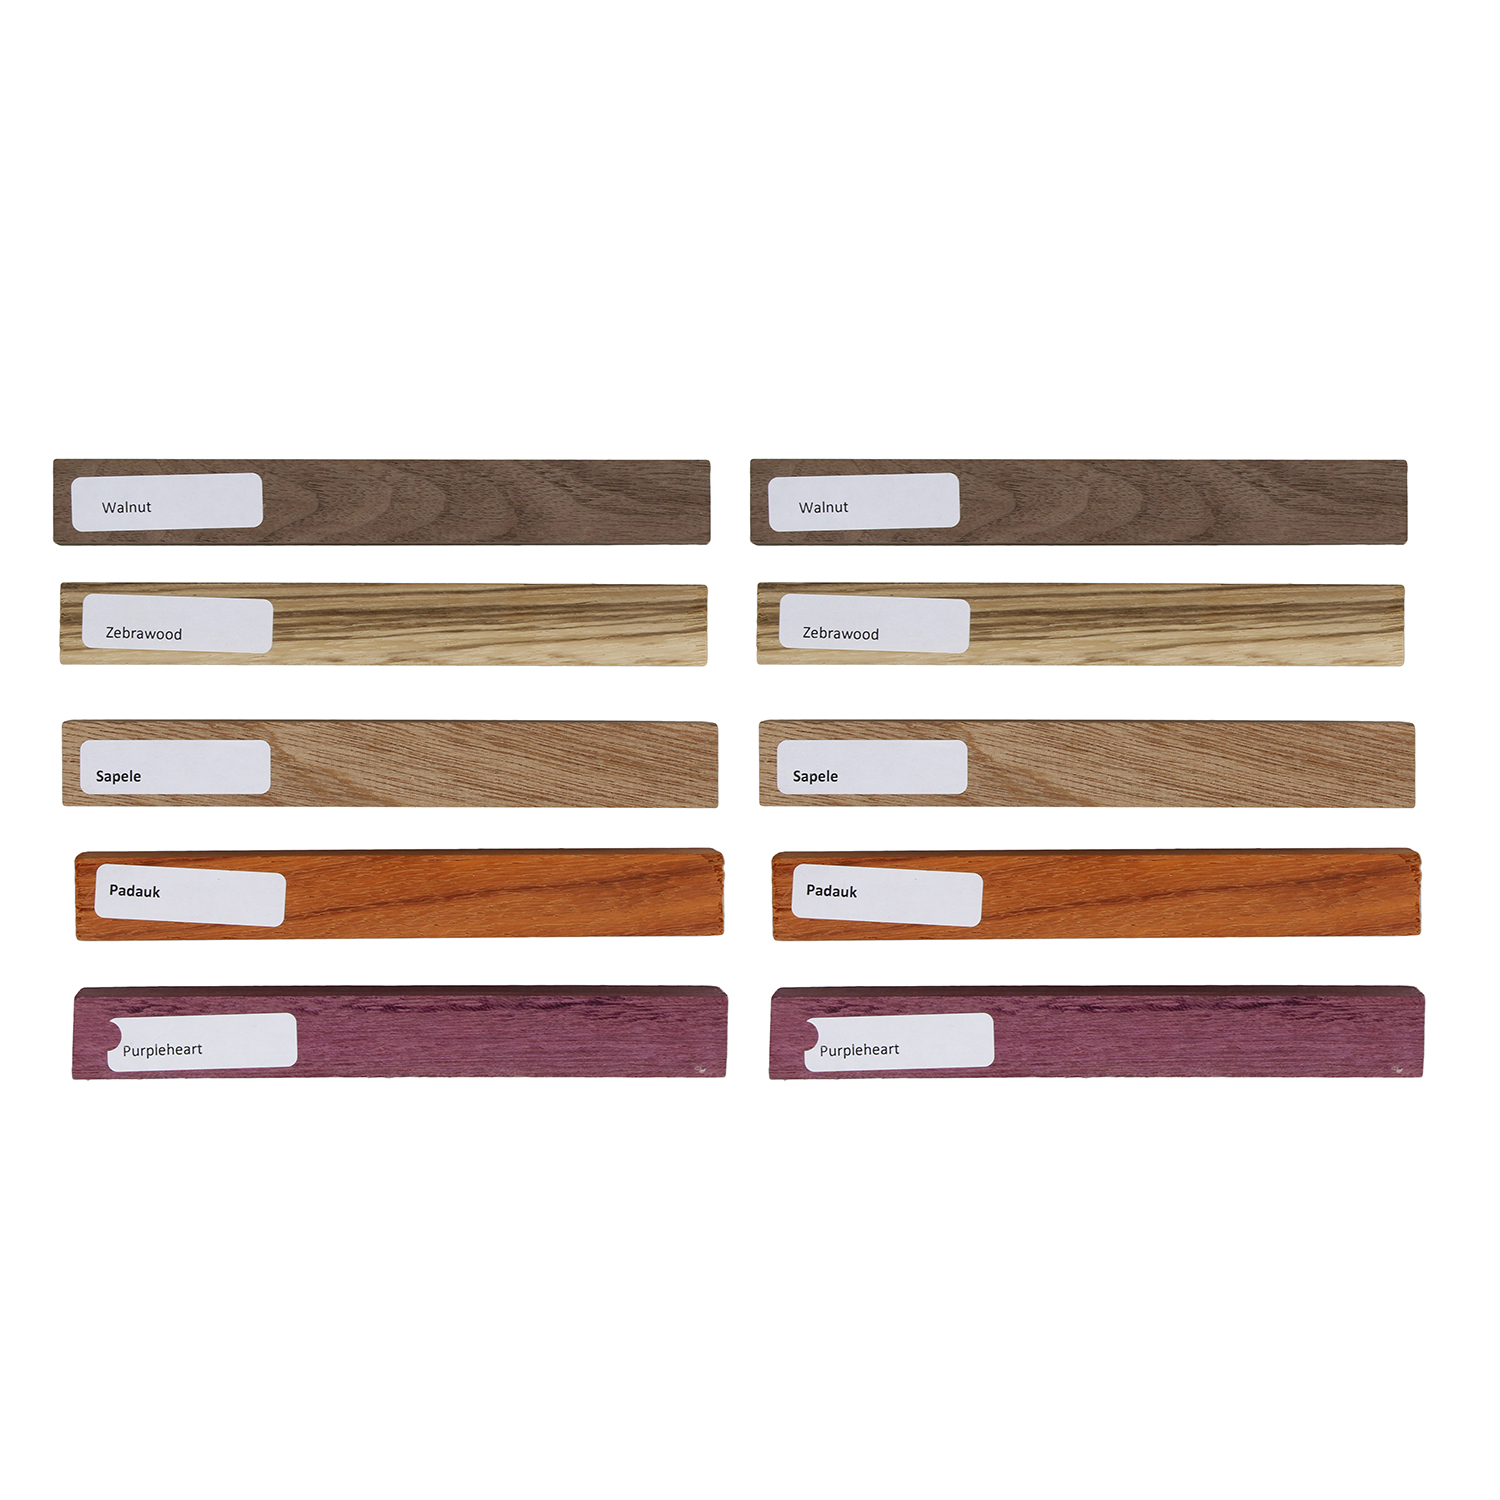 Details about DCT | Wood Turning Blanks 10pk 3/4